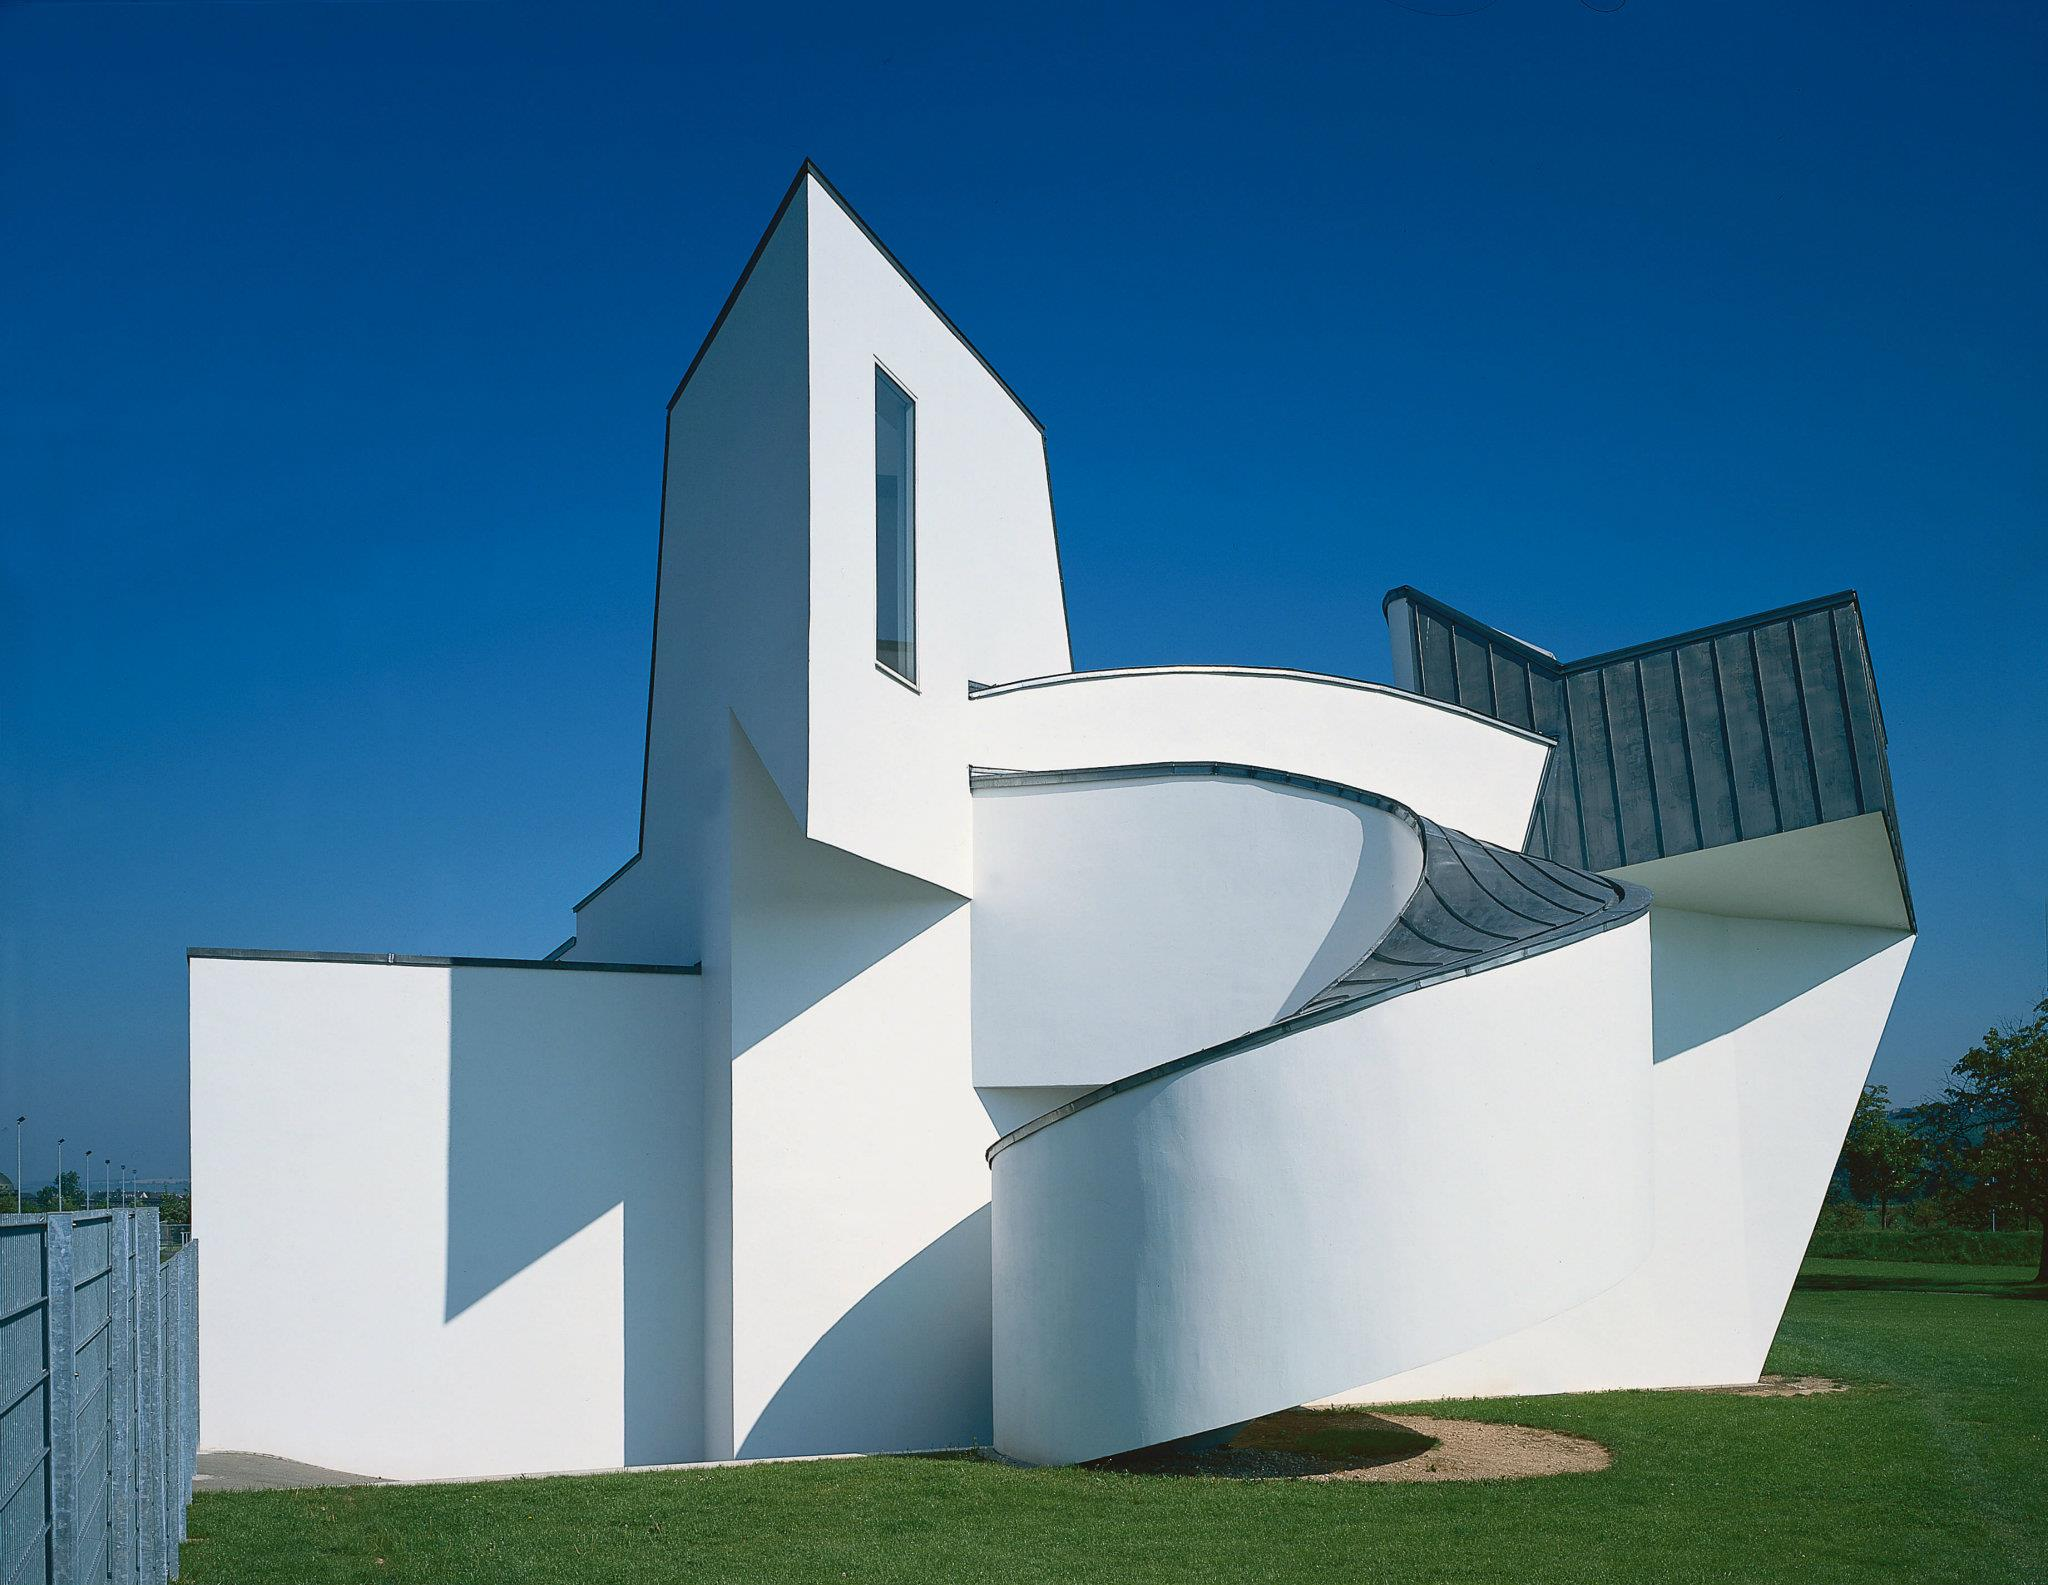 The Vitra Design Museum Weil am Rhein